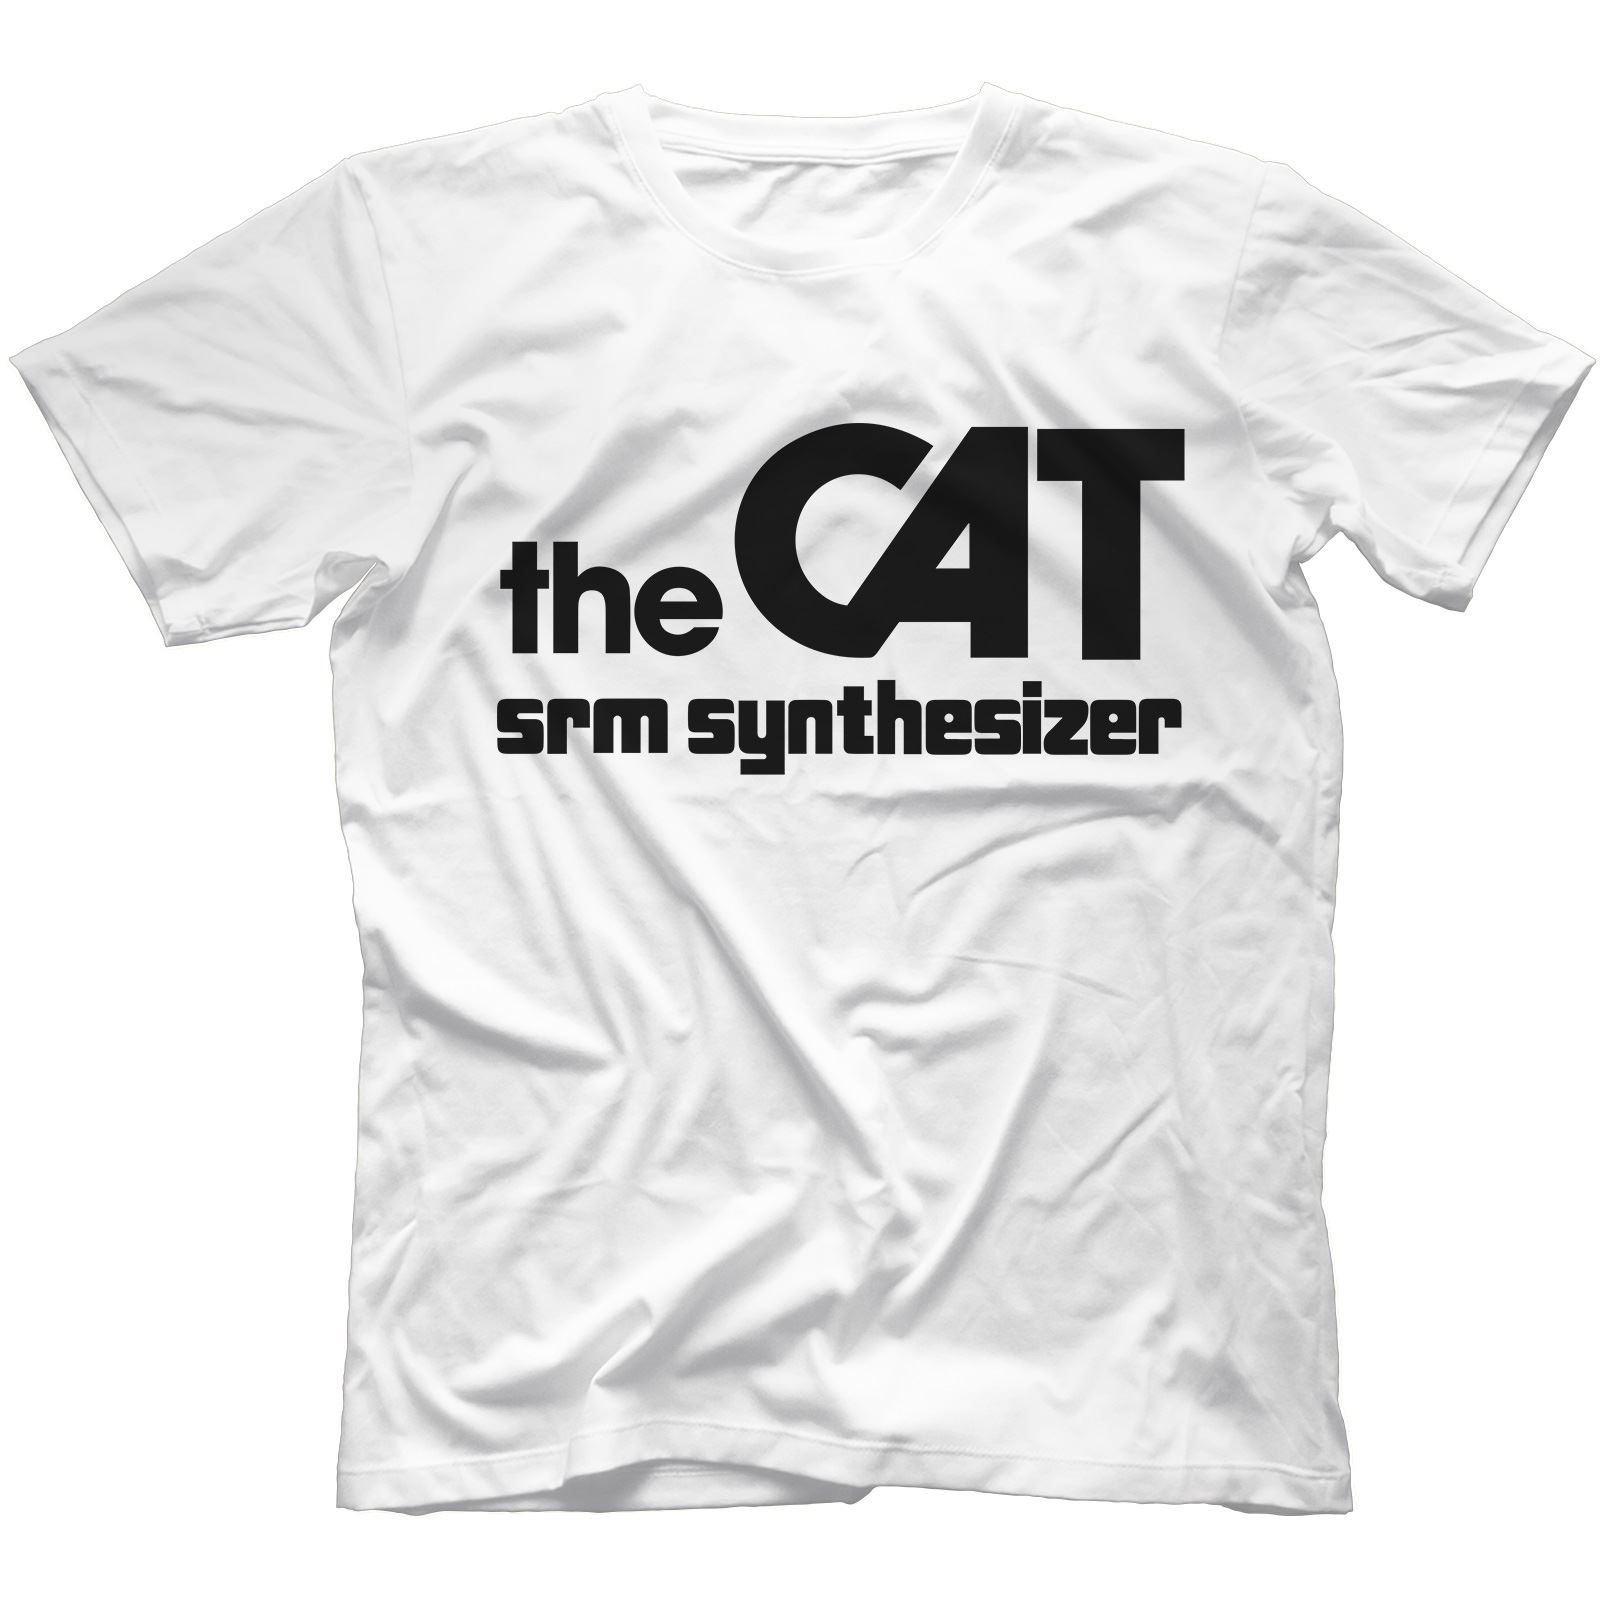 The-Cat-SRM-Synthesiser-T-Shirt-100-Cotton-Retro-Analog-Arp-Odyssey Indexbild 54